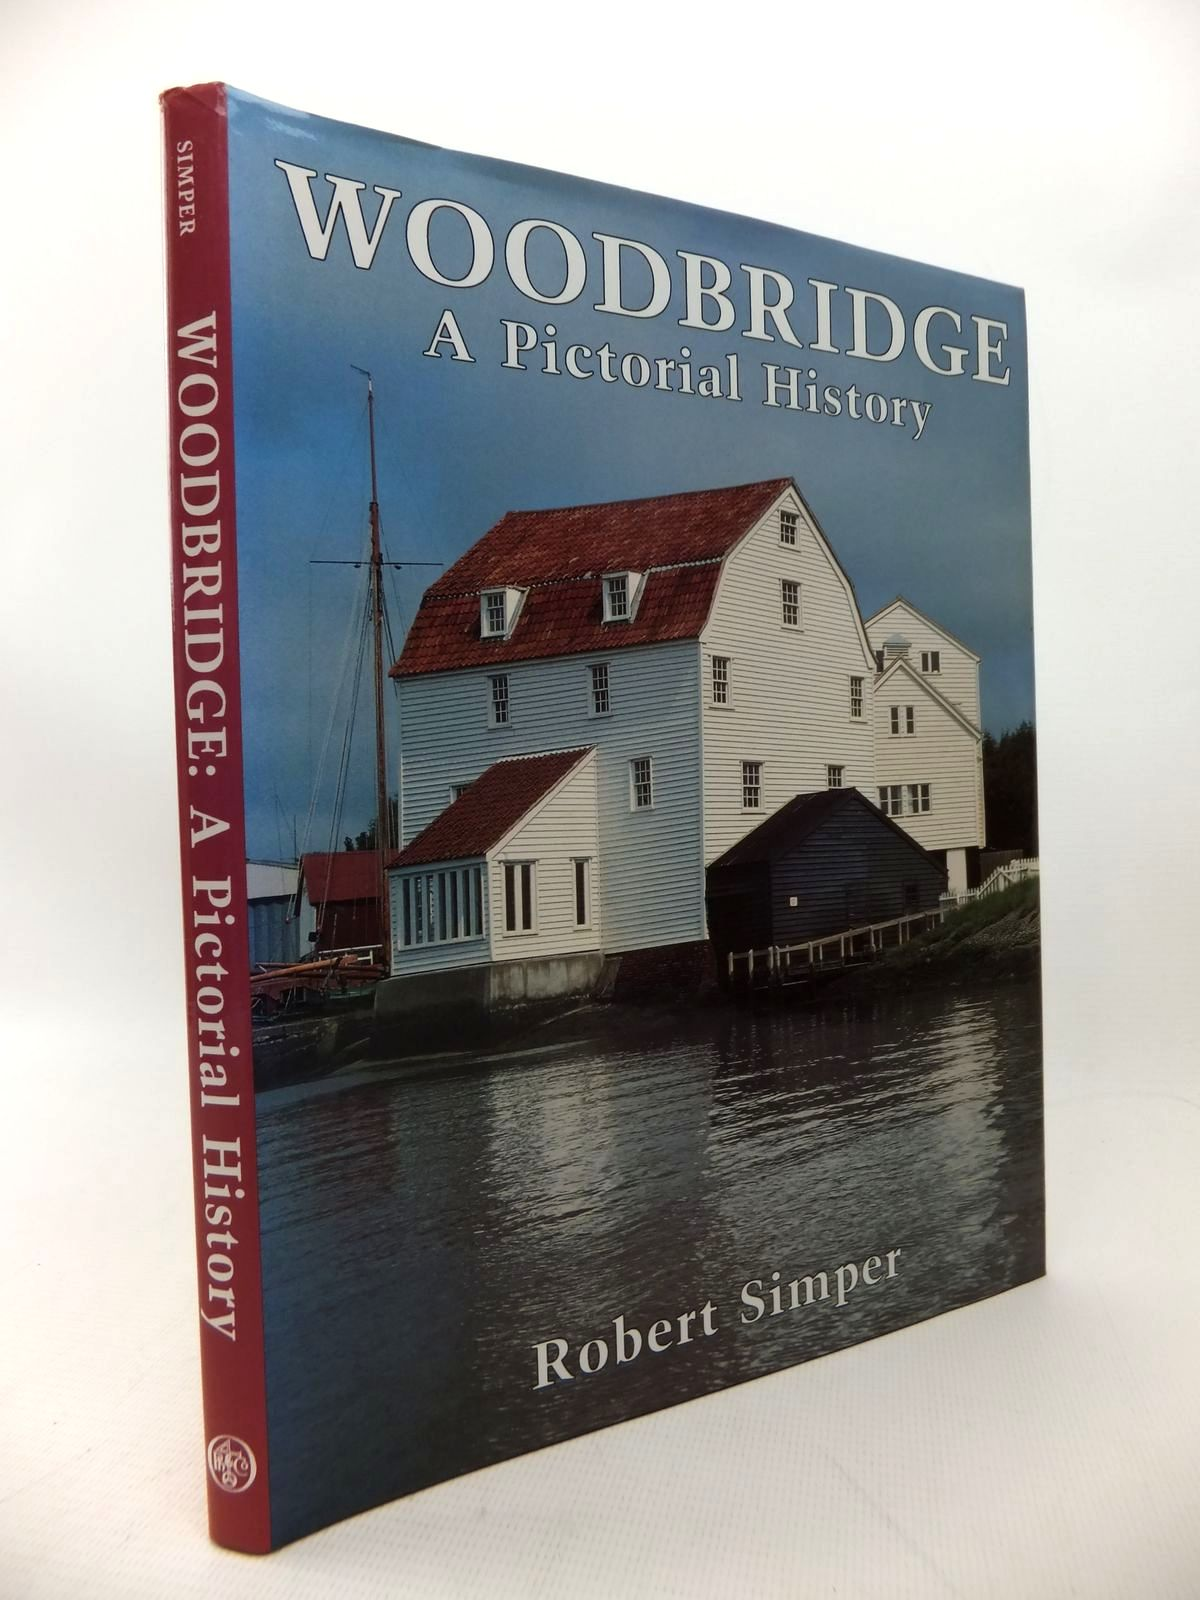 Photo of WOODBRIDGE A PICTORIAL HISTORY written by Simper, Robert published by Phillimore (STOCK CODE: 1814168)  for sale by Stella & Rose's Books